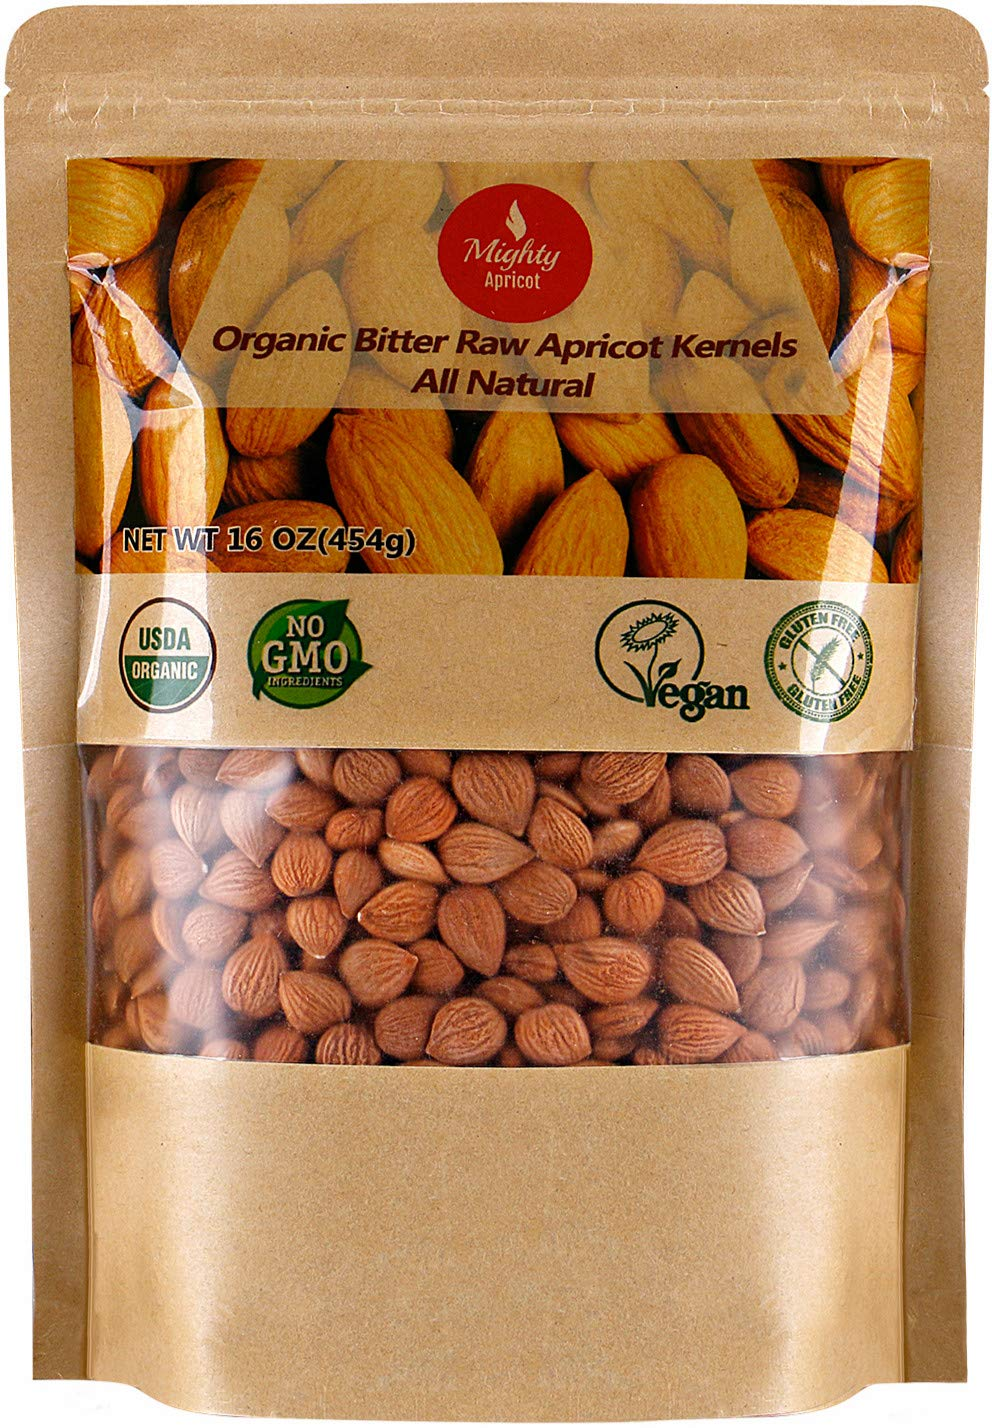 Organic Bitter Apricot Kernels(1LB) 16oz, Natural Raw USDA Organic Bitter Apricot Seeds, Vegan, Non-GMO, Gluten Free, Great source of Vitamin B17 and B15 by Mighty Apricot (Image #1)